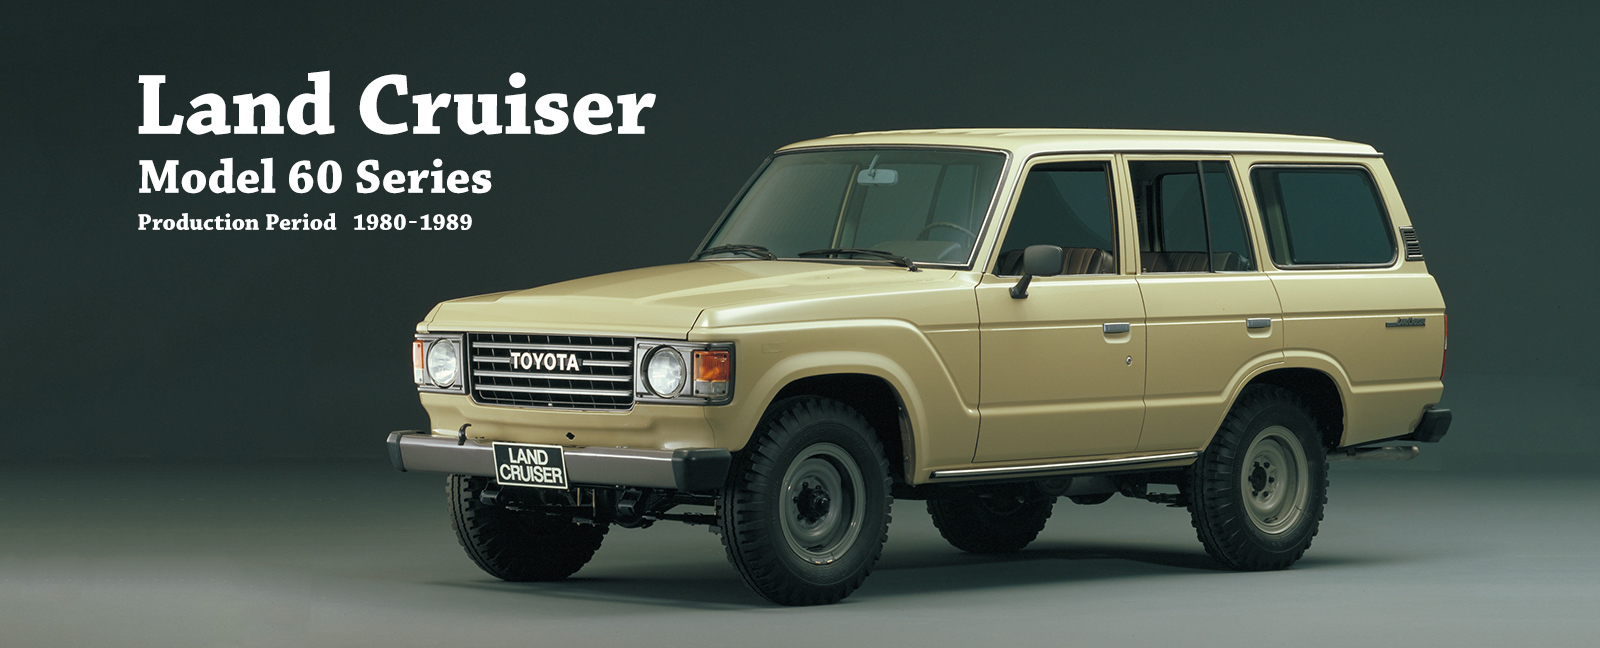 Toyota Global Site Land Cruiser Model 60 Series 01